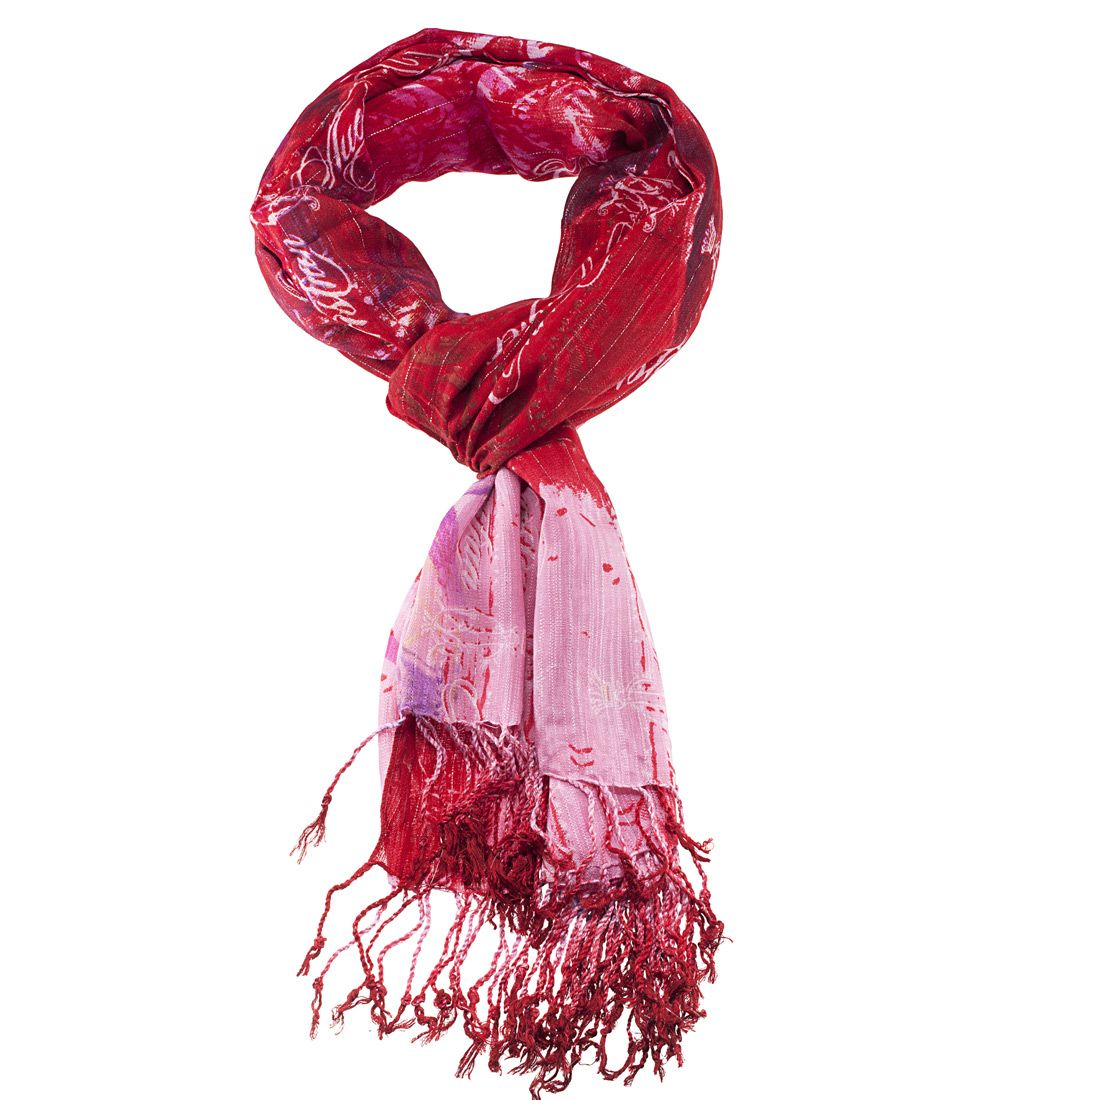 #ChristianAudigier 80x40 Logo Printed Fringe #Scarf - Pink. The Christian Audigier Scarf is a quality scarf from the Christian Audigier Scarves Collection. This Christian Audigier scarf is made of Viscose fabric. #couture #womensfashion